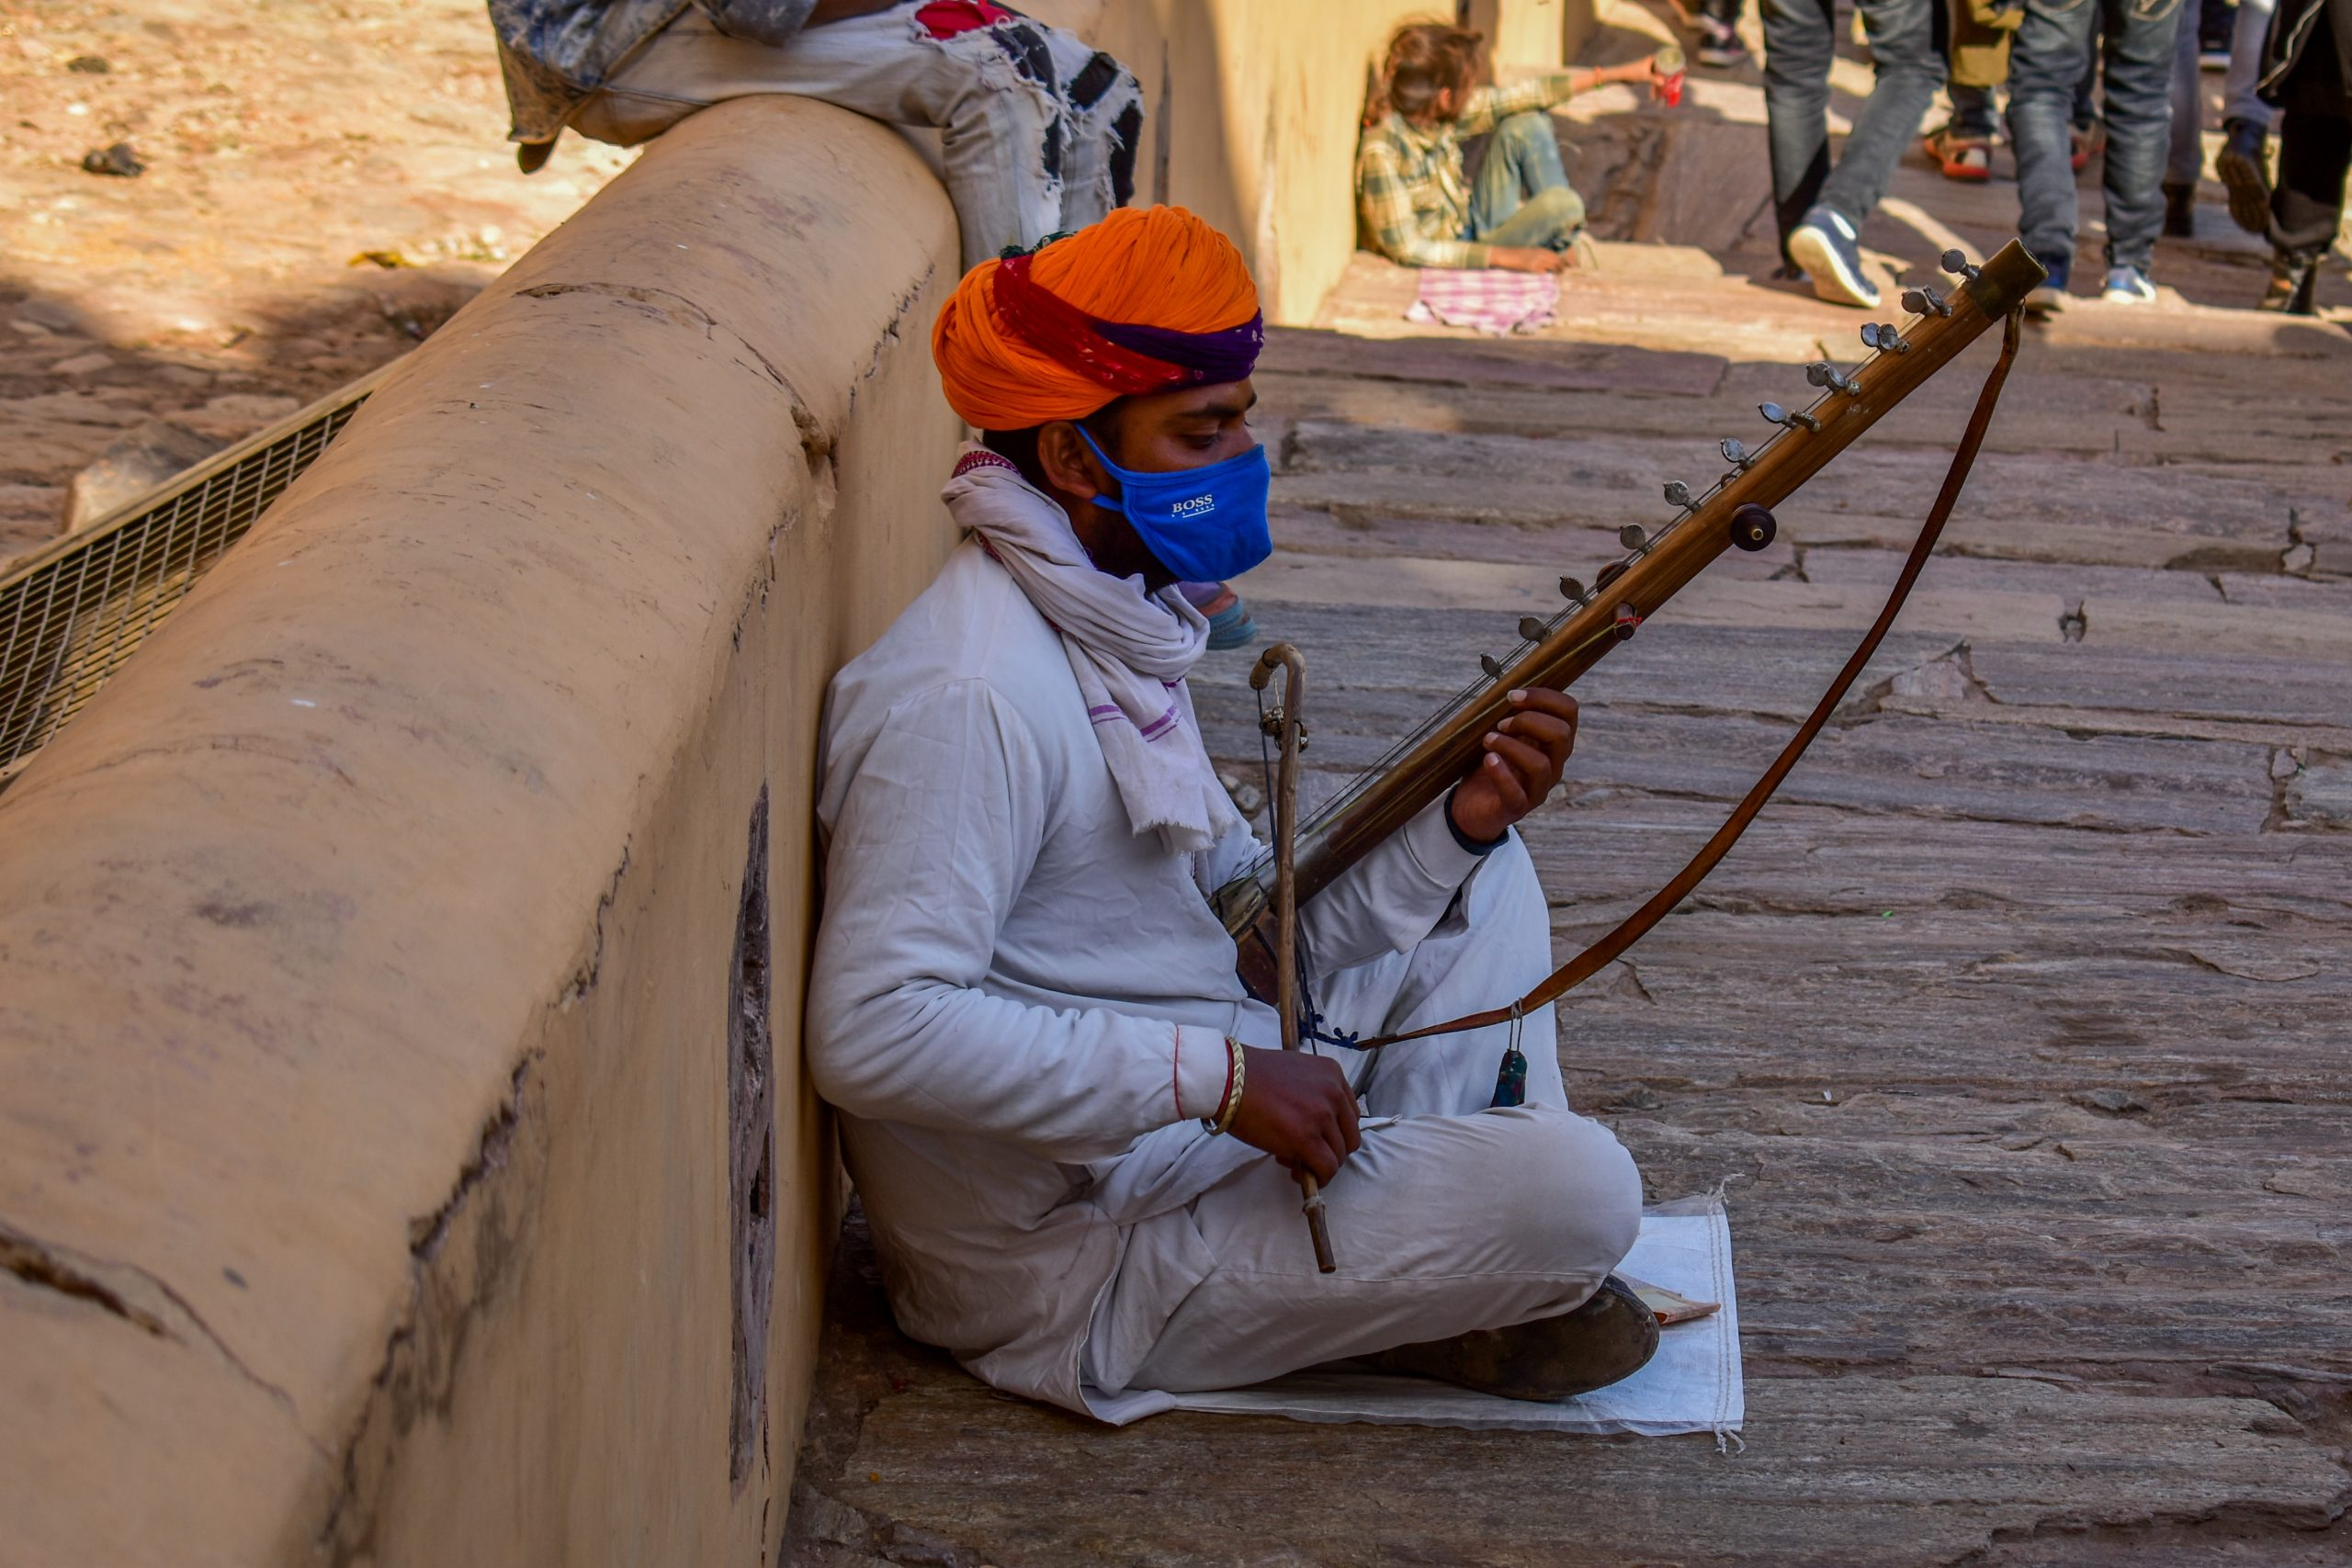 Boy with mask playing music instrument roadside